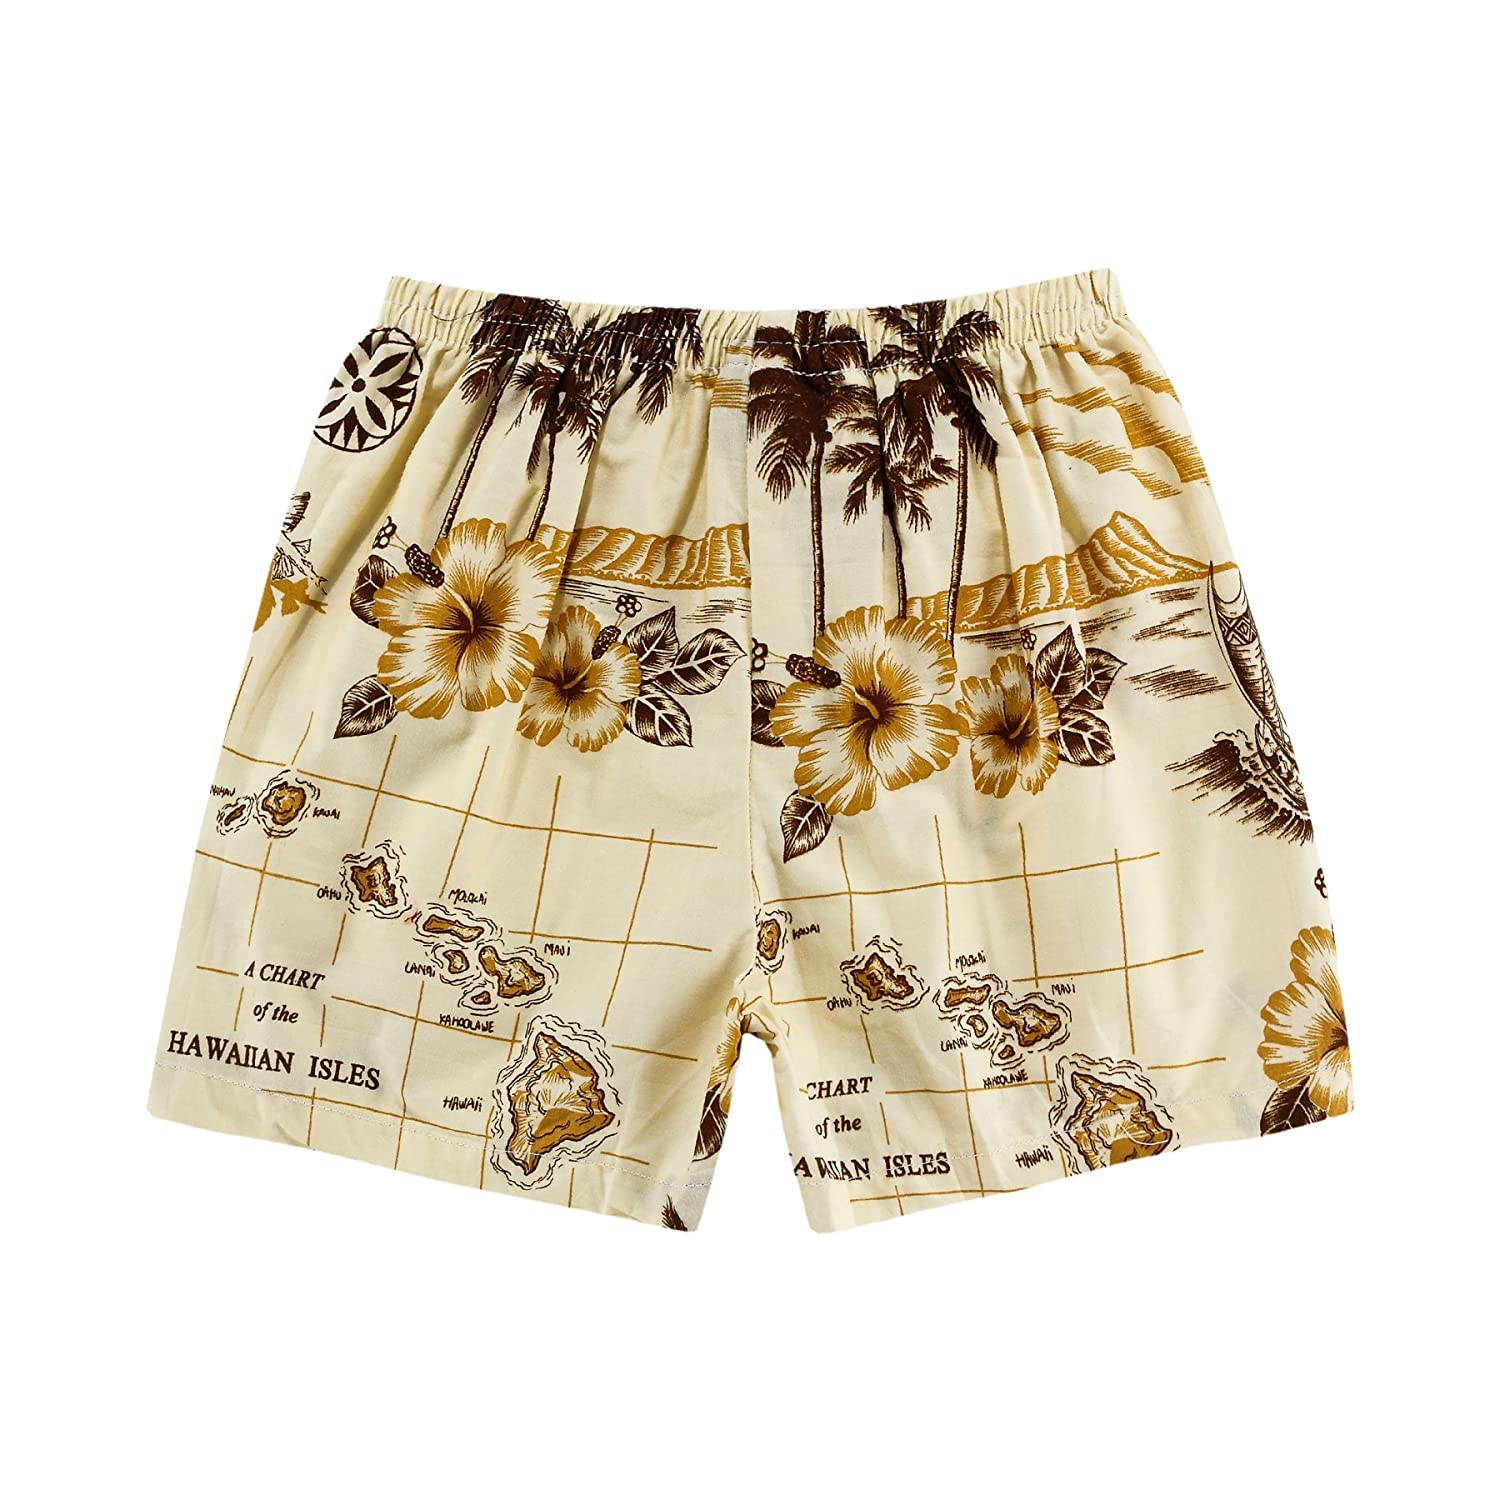 Boy Hawaiian Shirt and Shorts 2 Piece Cabana Set in Tan with Boat and Map